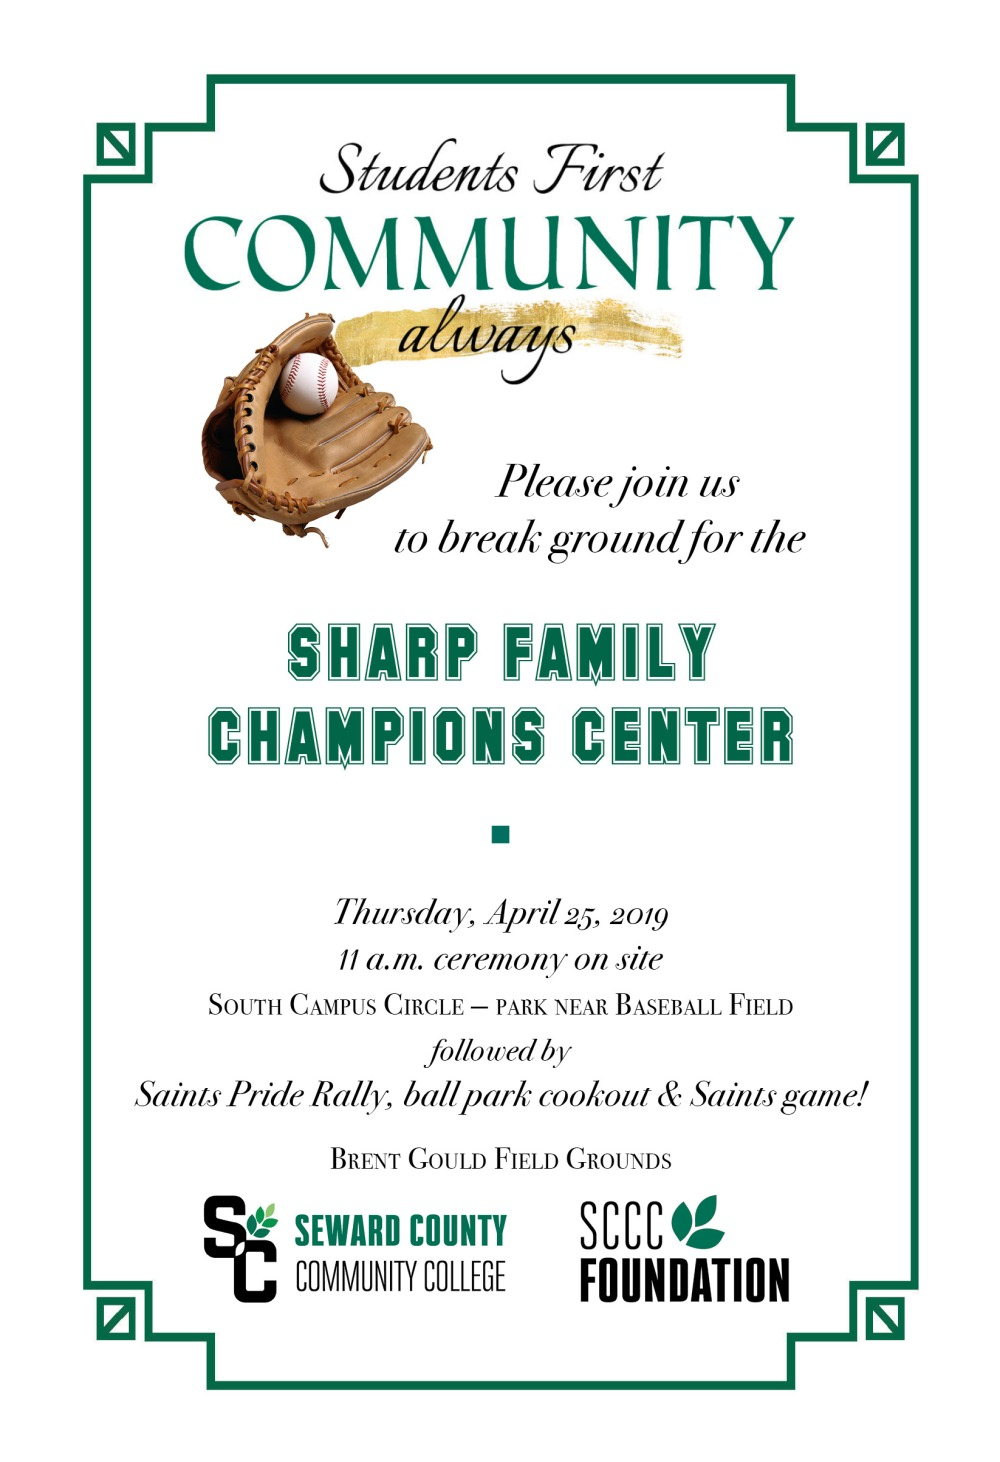 Champions Center invite for DIGITAL sharing